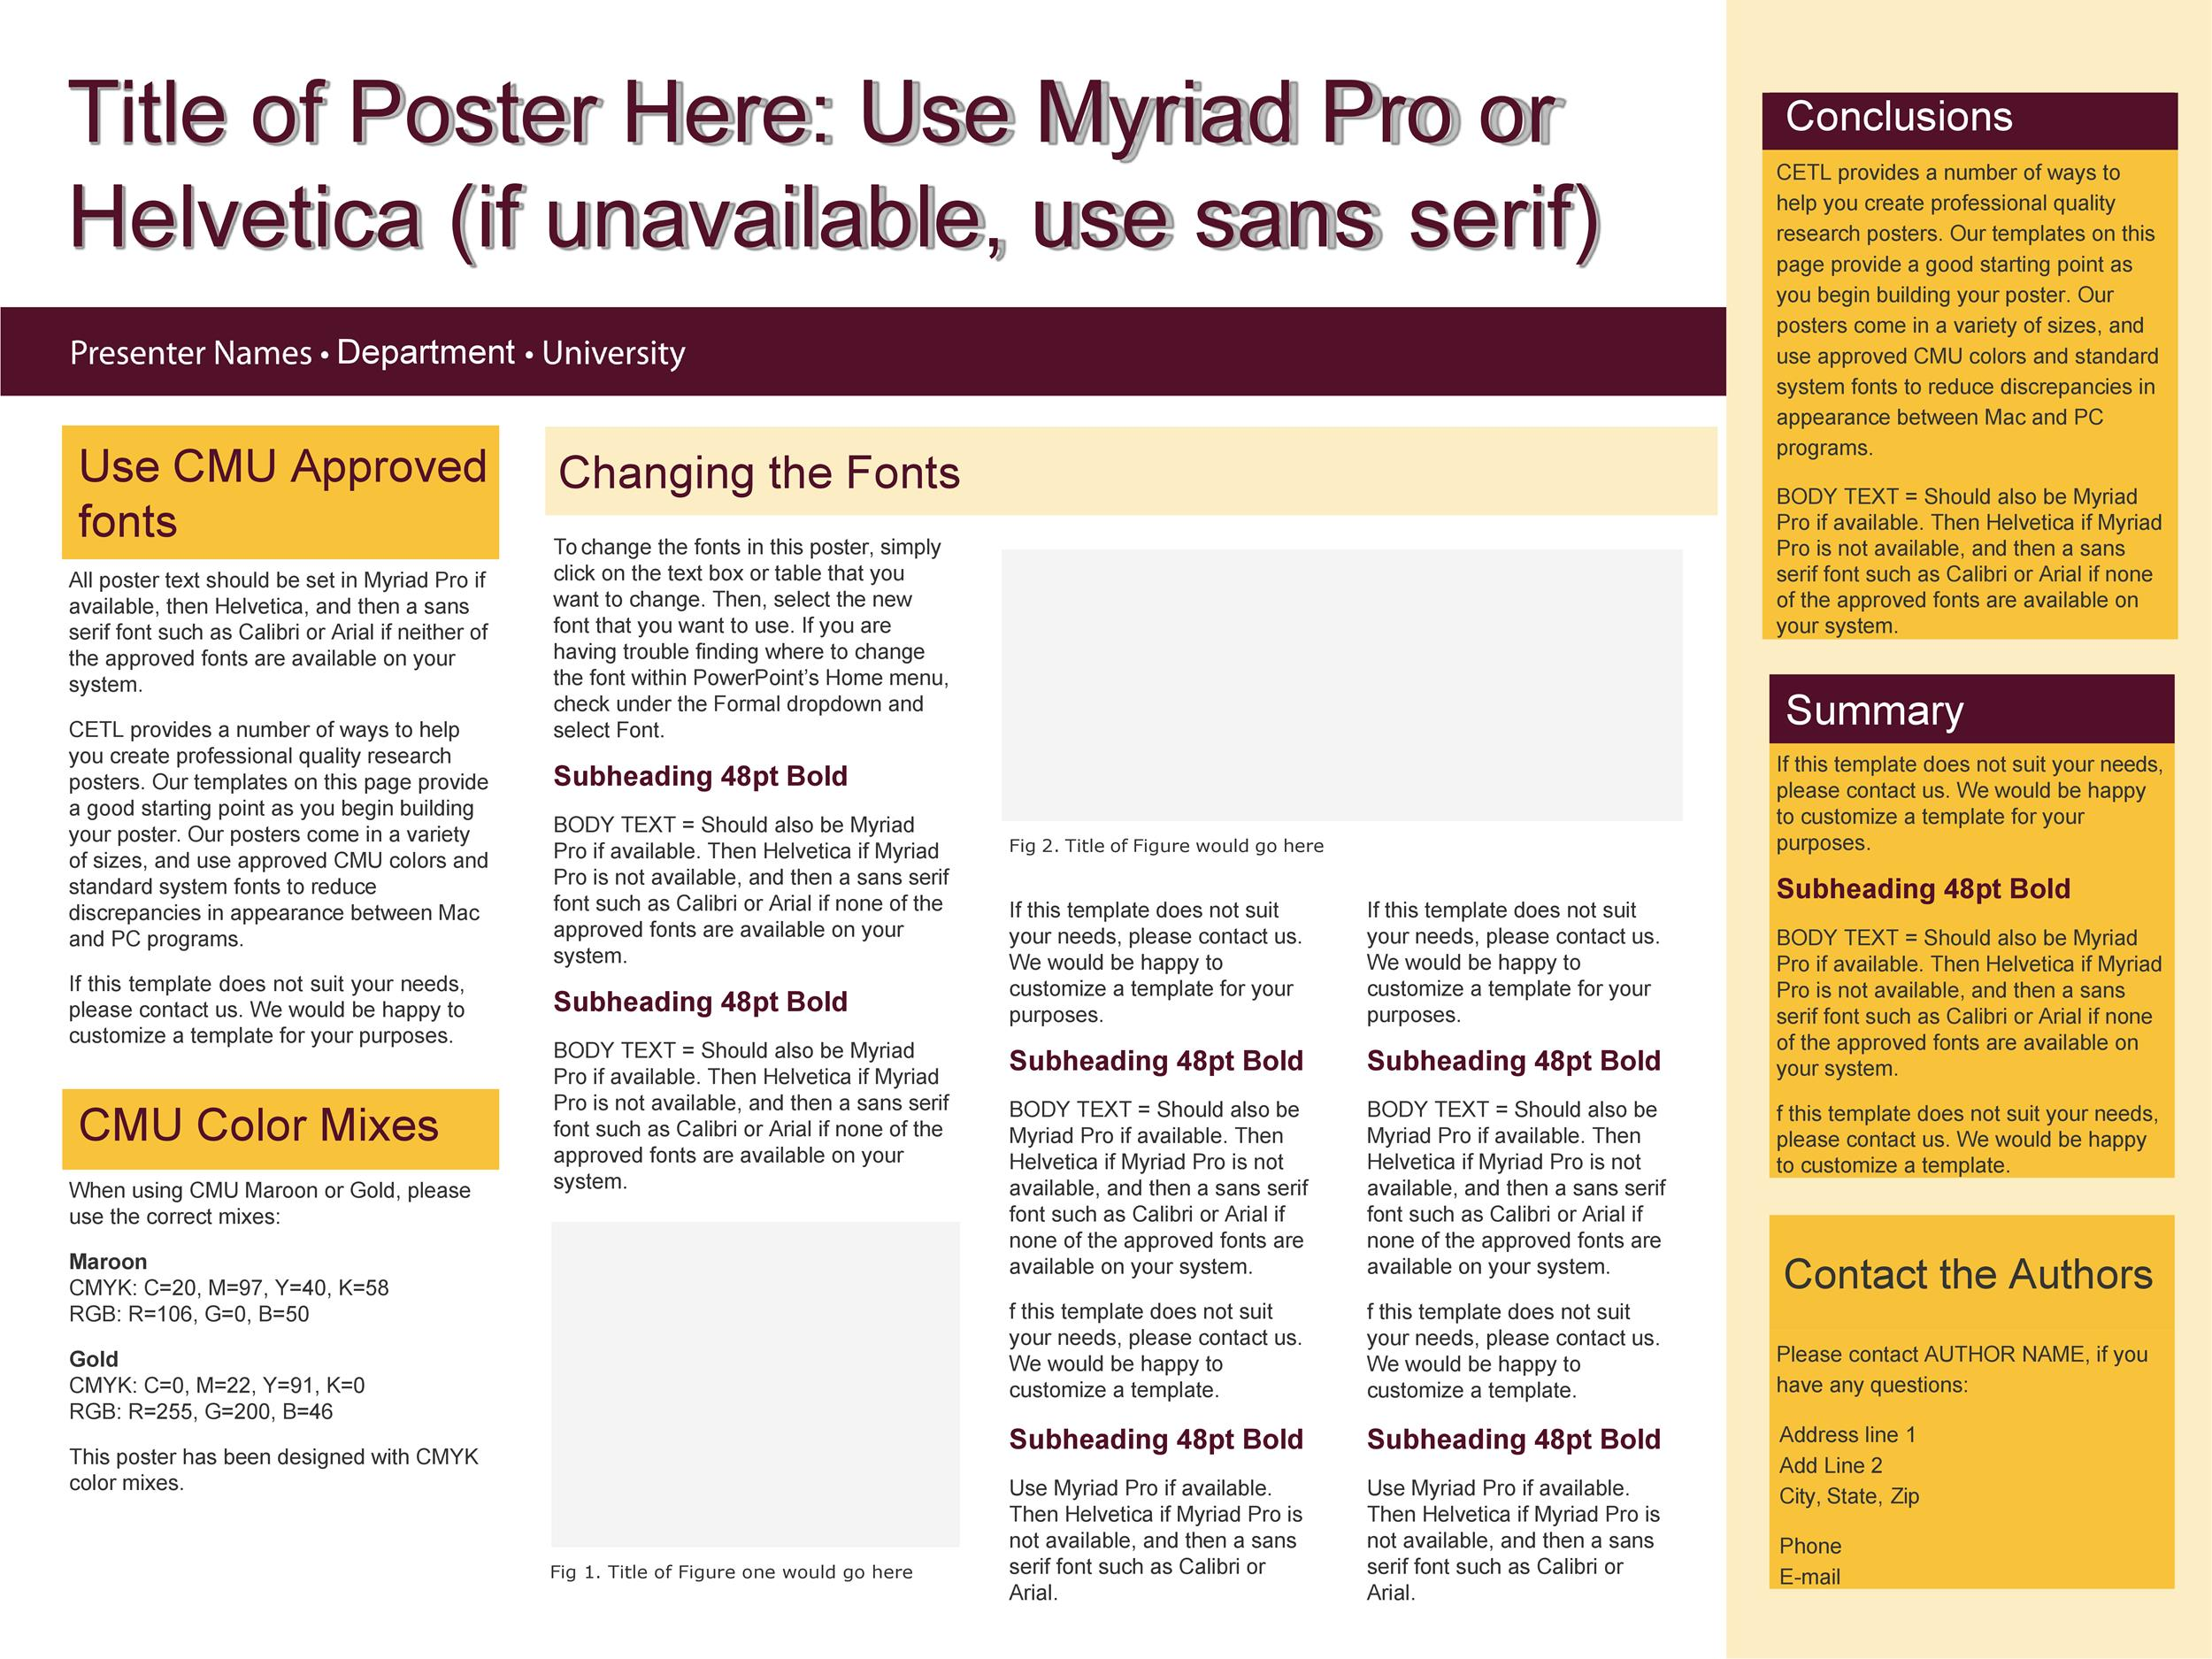 Free research poster template 33